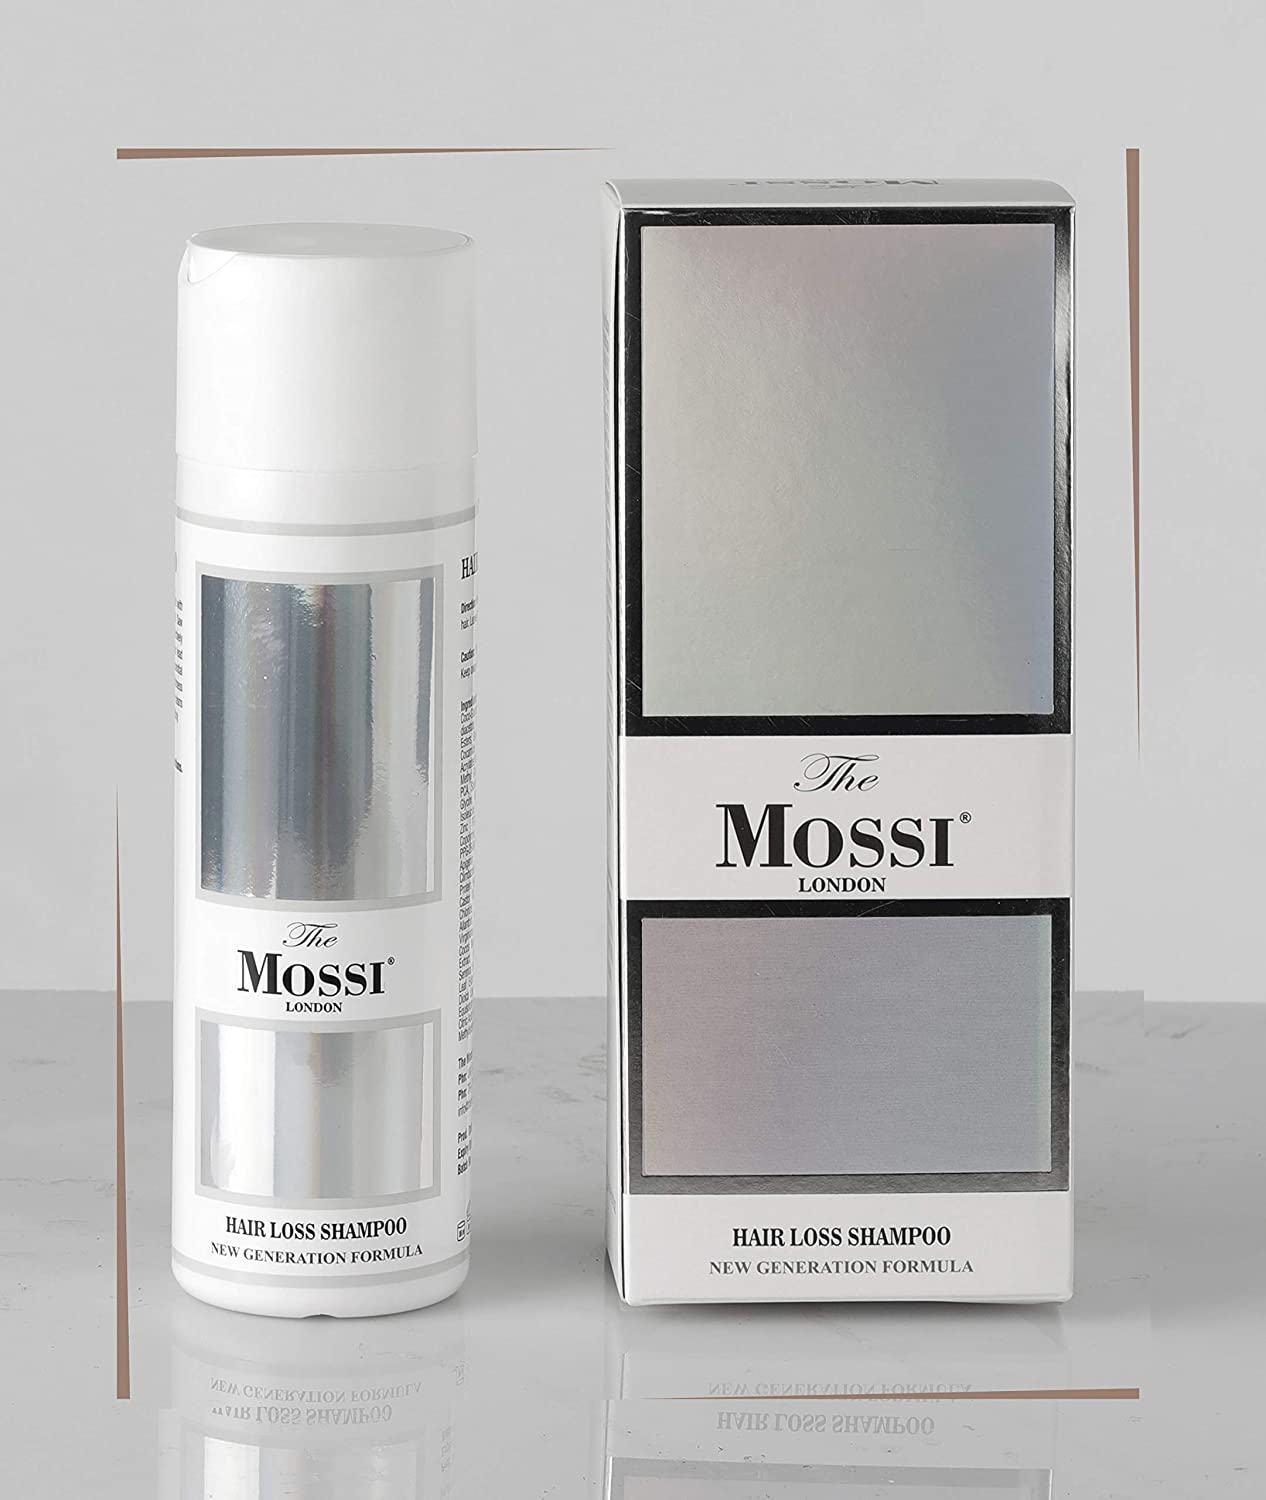 The Mossi London Hair Loss Shampoo